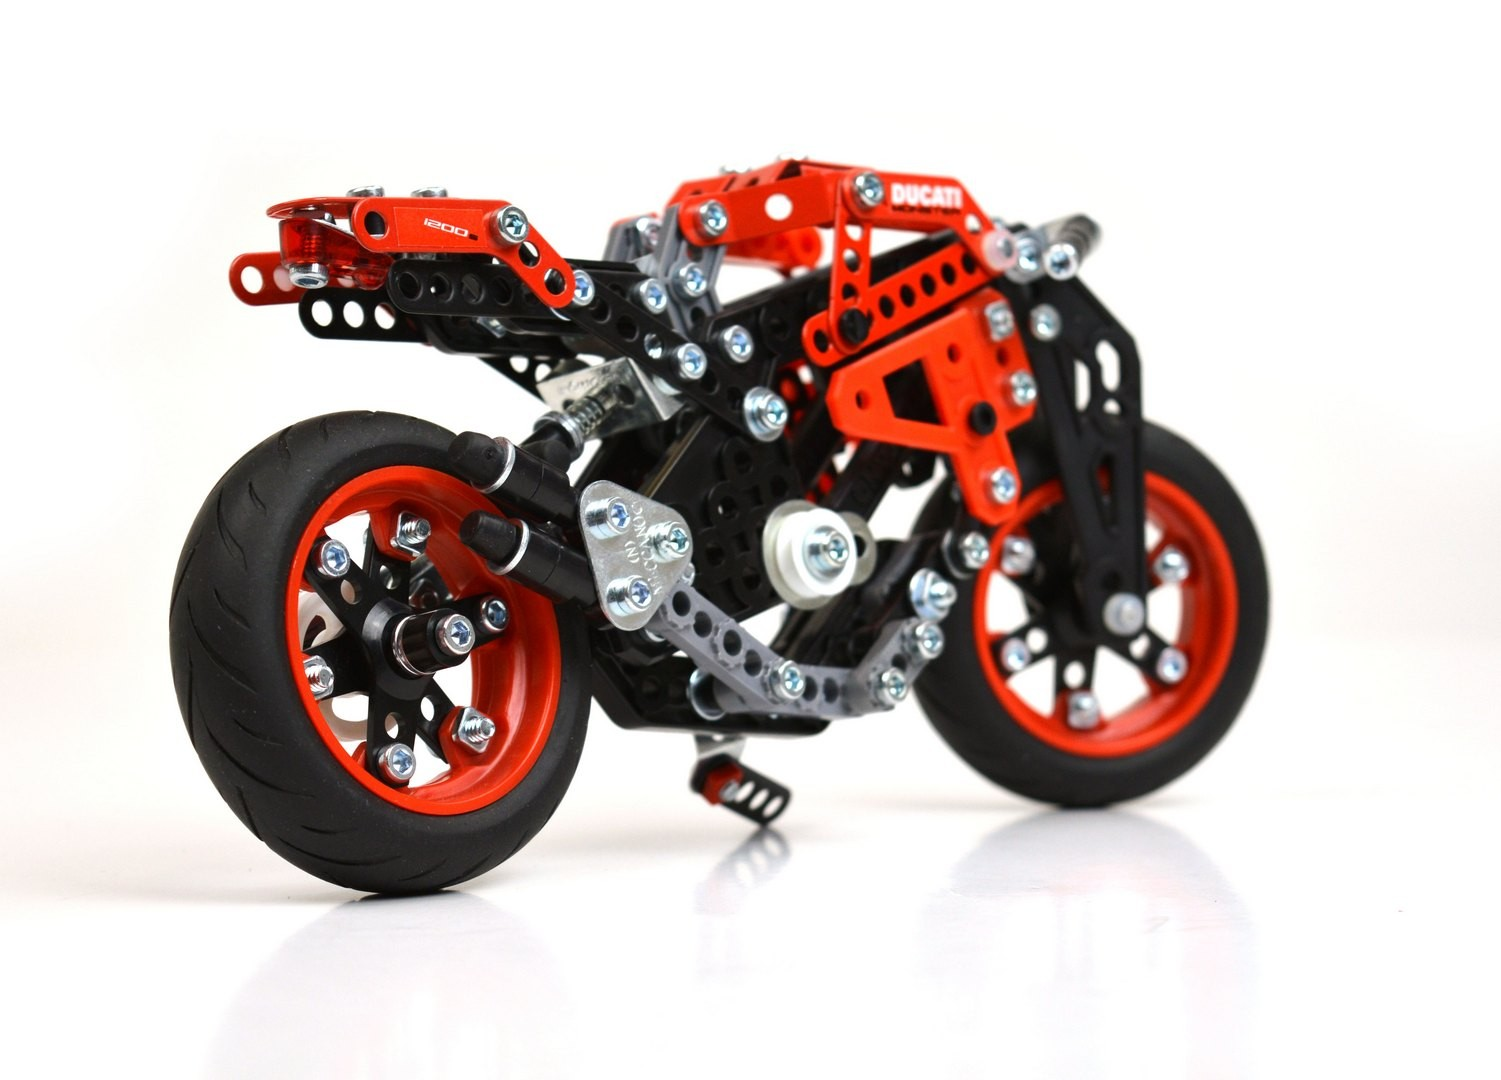 Best Meccano Sets And Toys For Kids : Ducati meccano model sets are probably the best build it